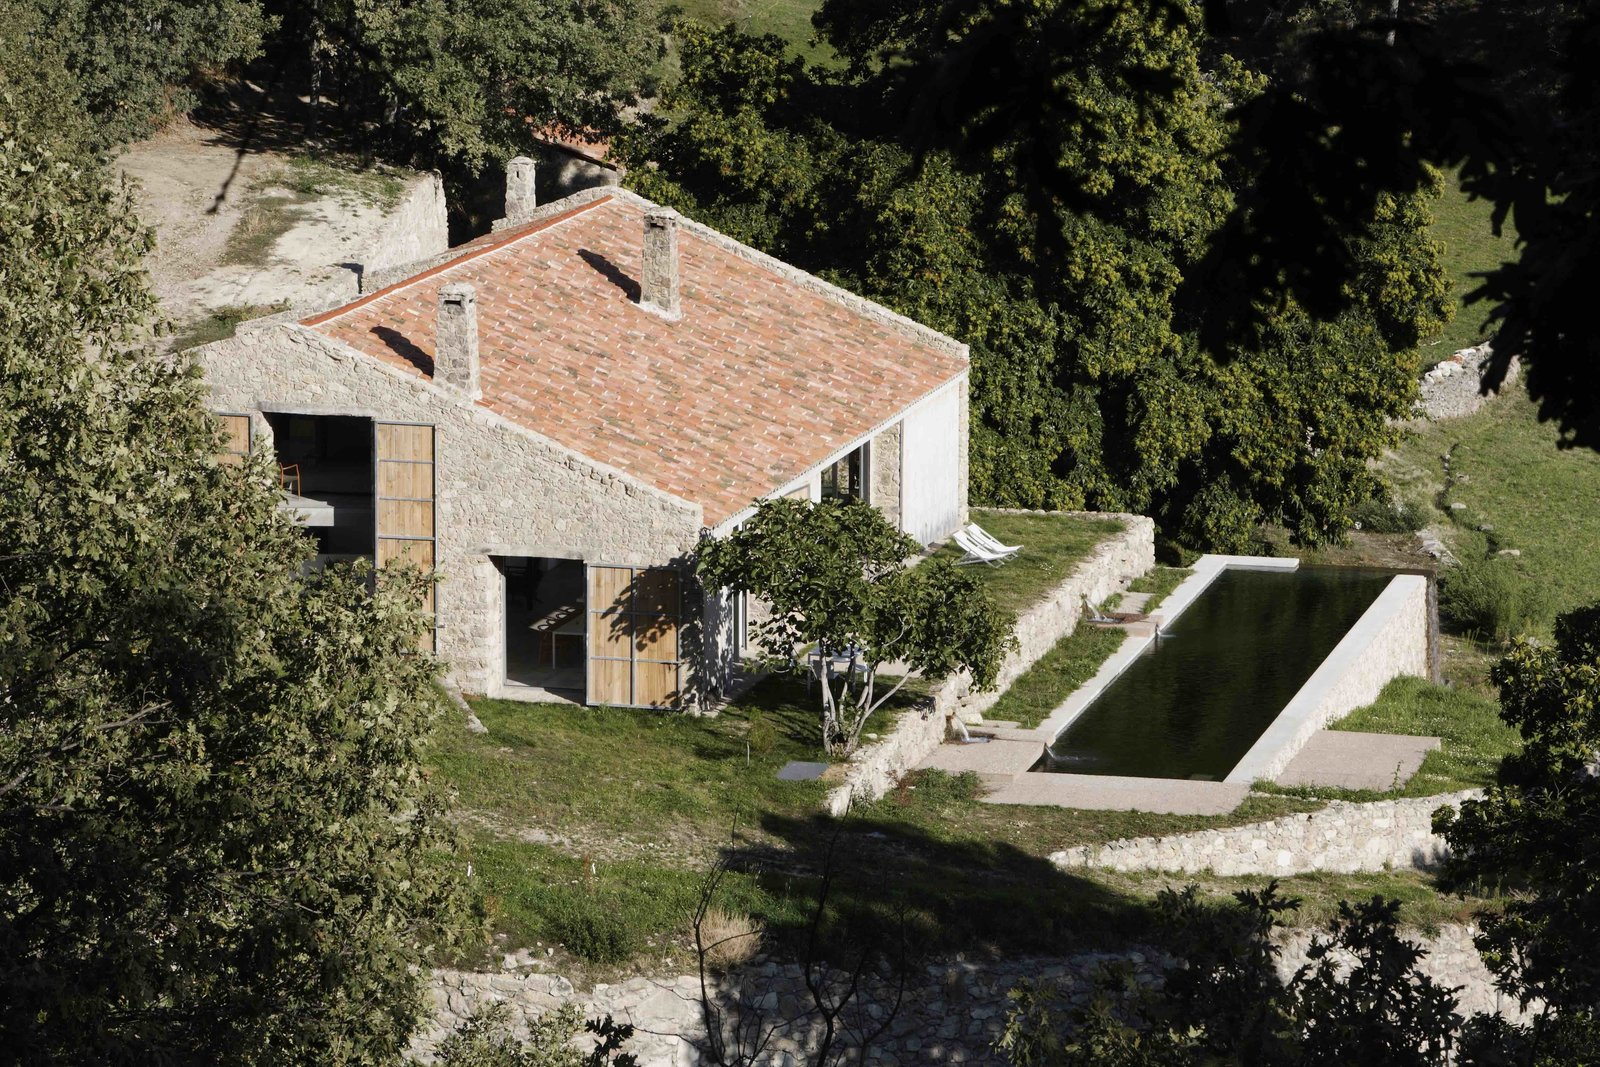 Exterior, Barn Building Type, Tile Roof Material, Wood Siding Material, Stone Siding Material, House Building Type, and Farmhouse Building Type  Photo 10 of 14 in An Abandoned Stable in Spain Is Transformed Into a Sustainable Vacation Home For Rent